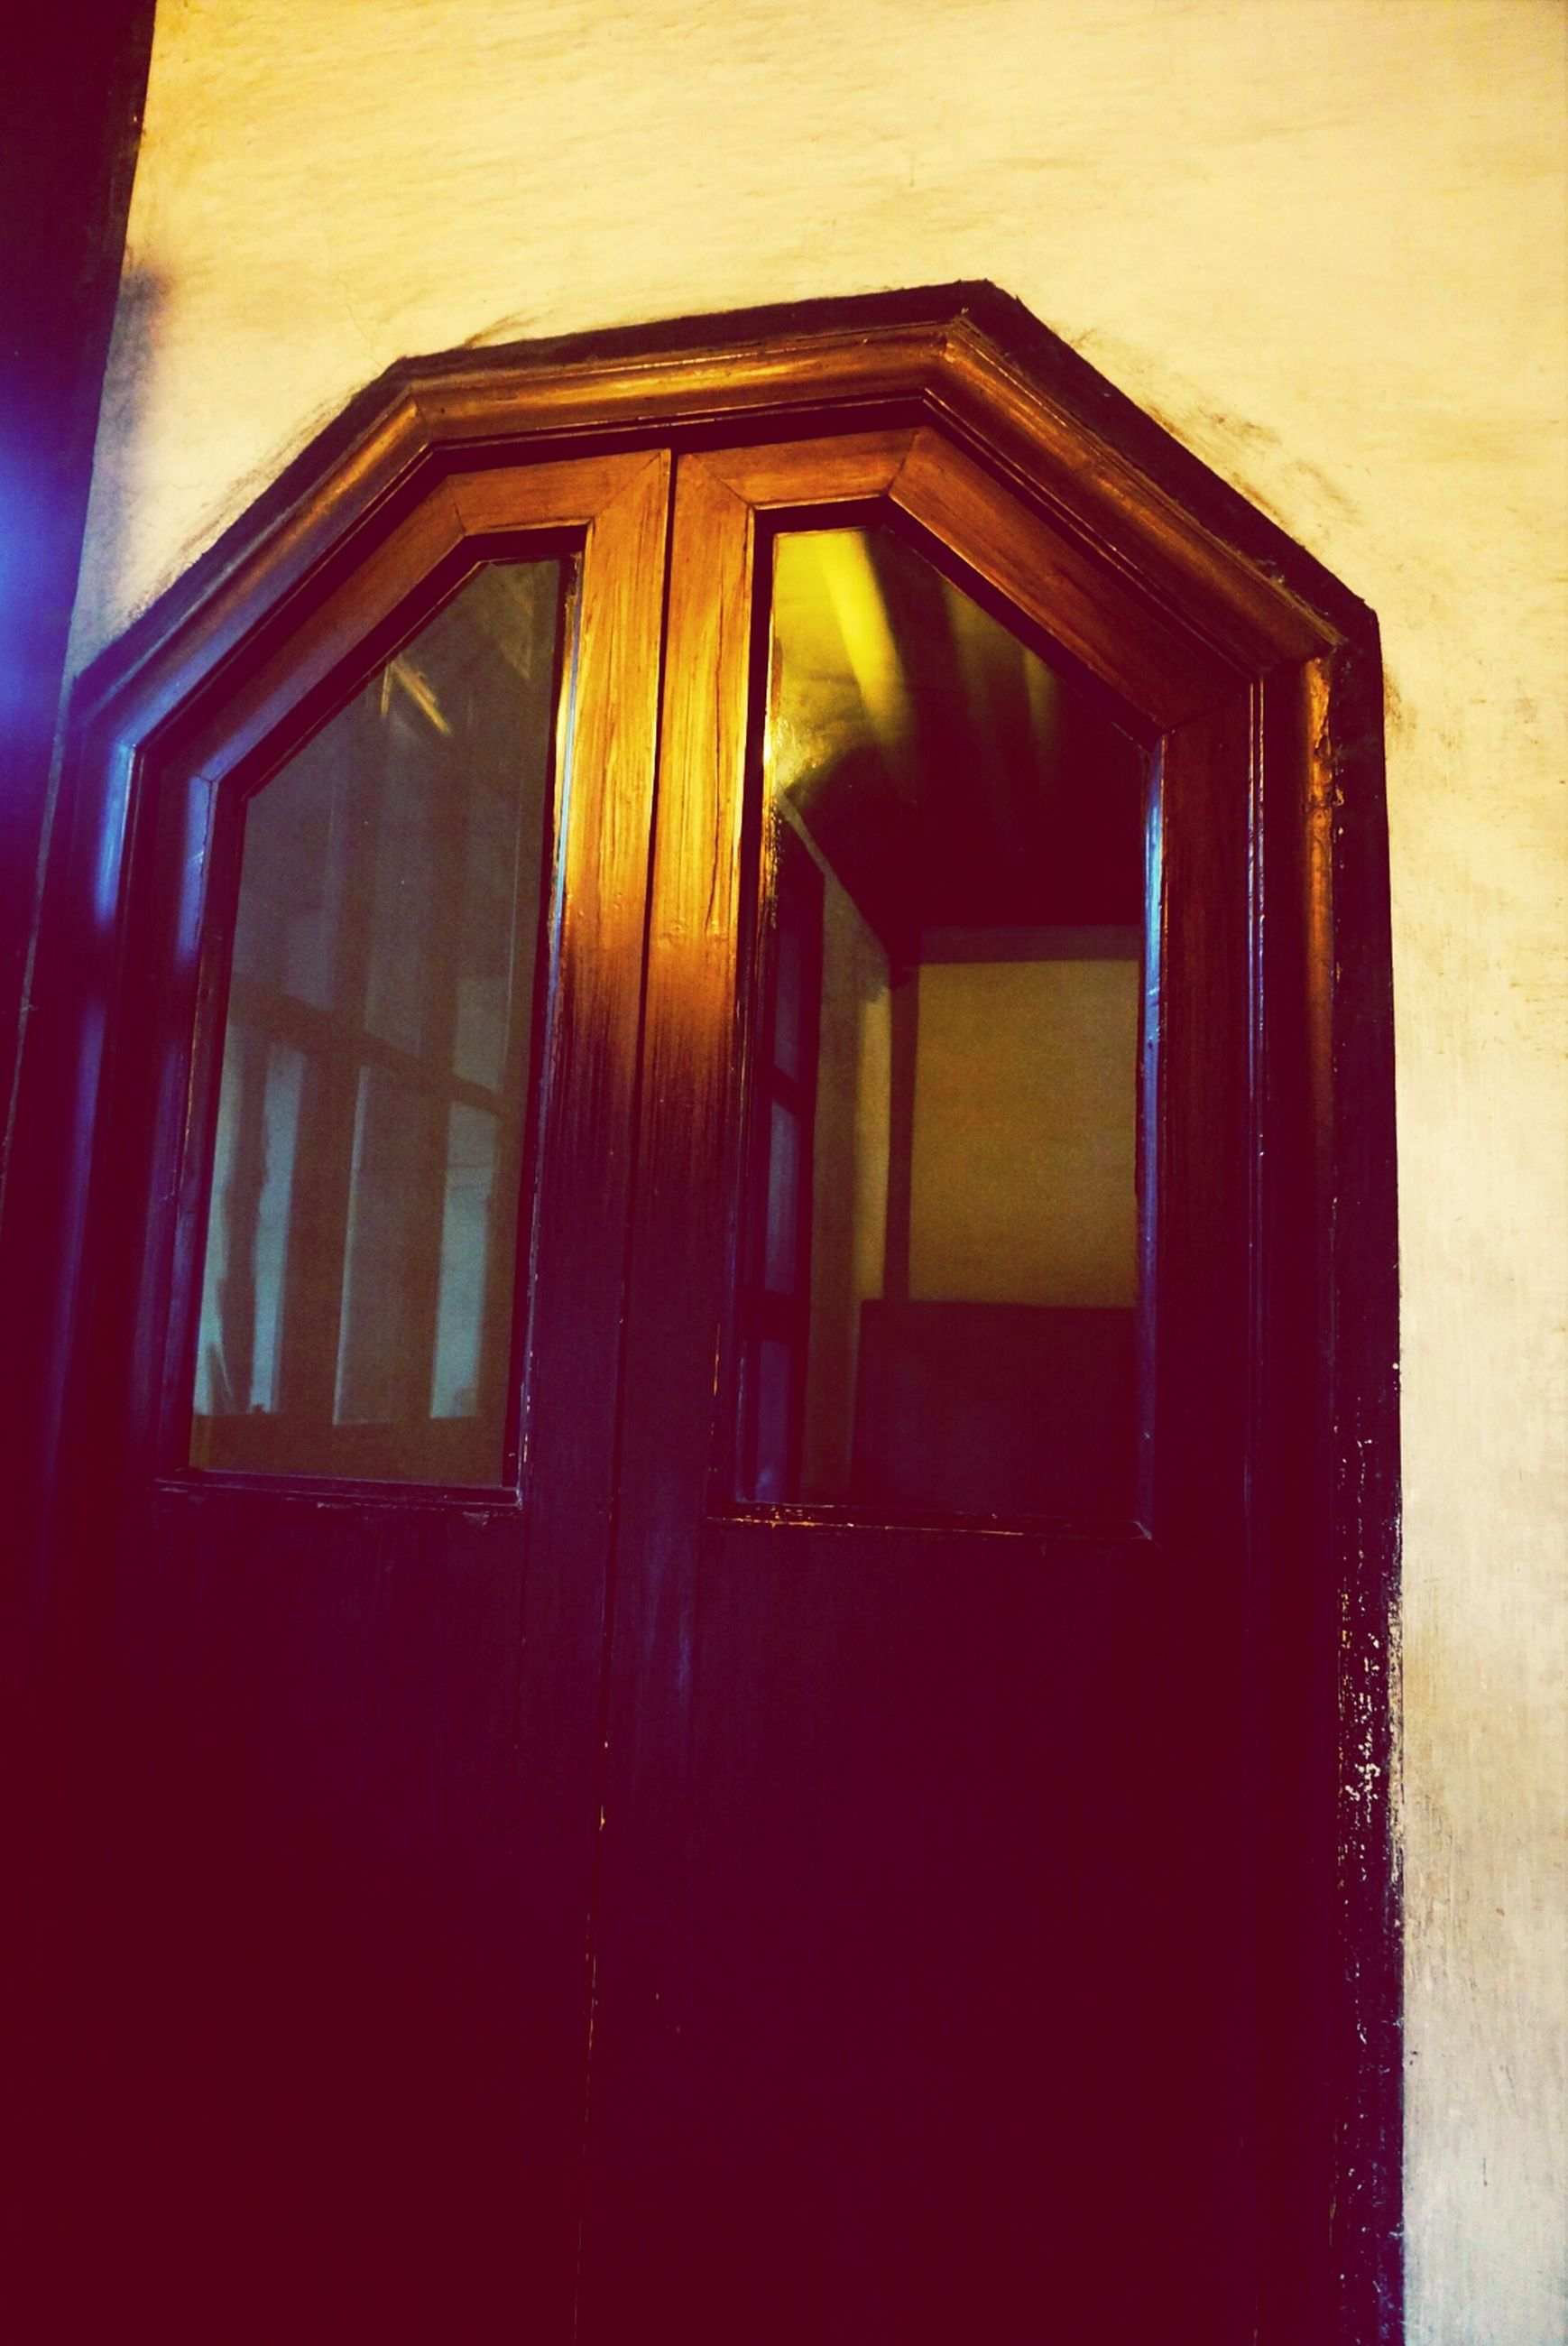 architecture, built structure, window, building exterior, house, low angle view, residential structure, residential building, no people, closed, door, yellow, building, wall - building feature, wall, sunlight, wood - material, indoors, shutter, day